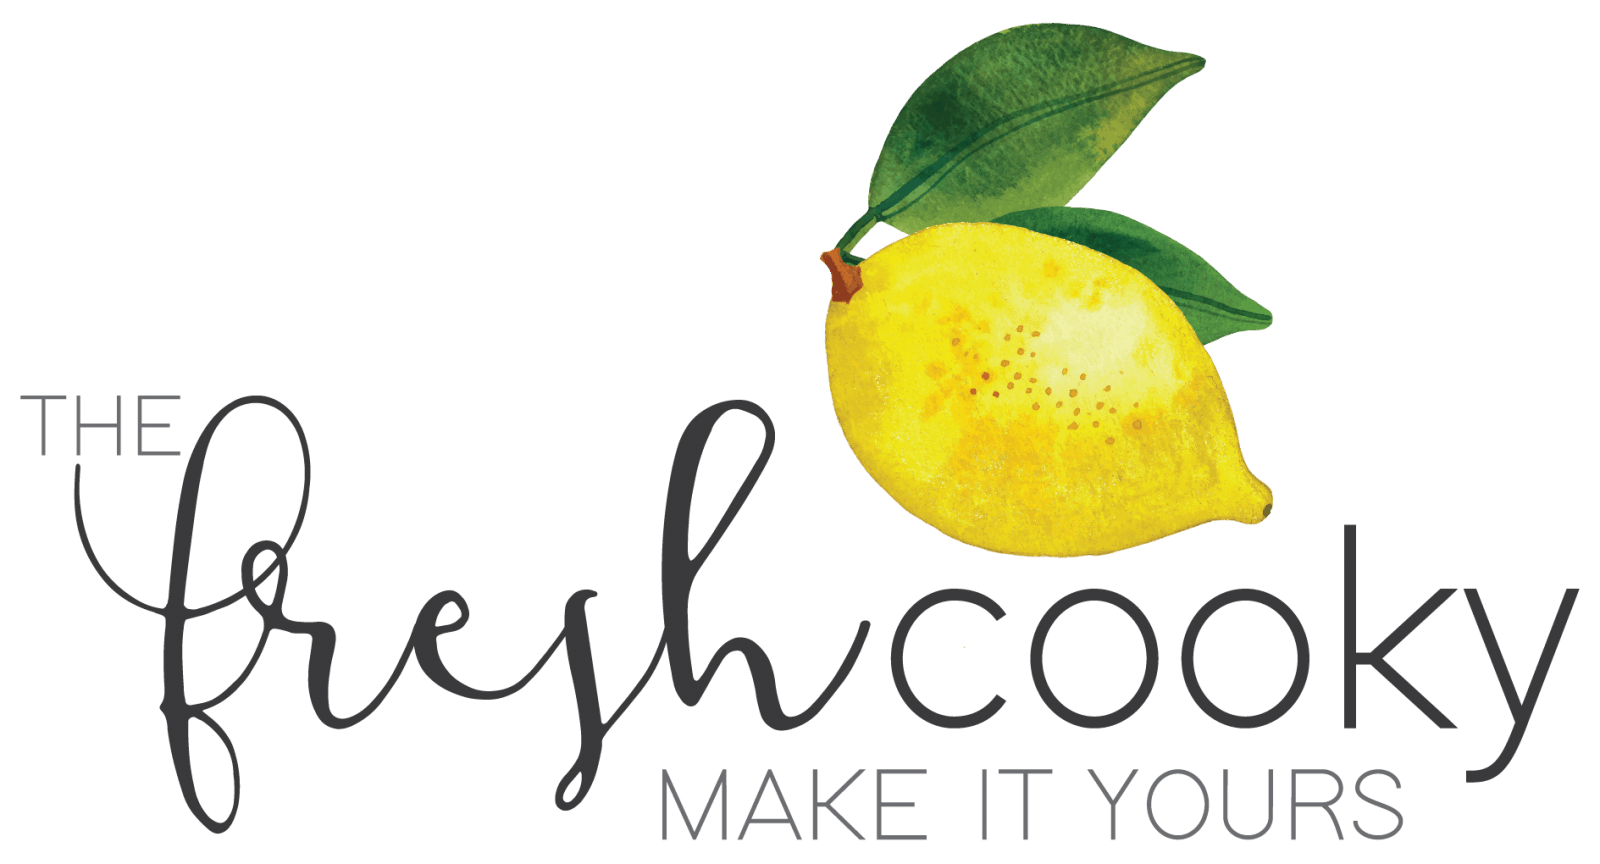 the_fresh_cooky_make_it_yours_logo with lemon